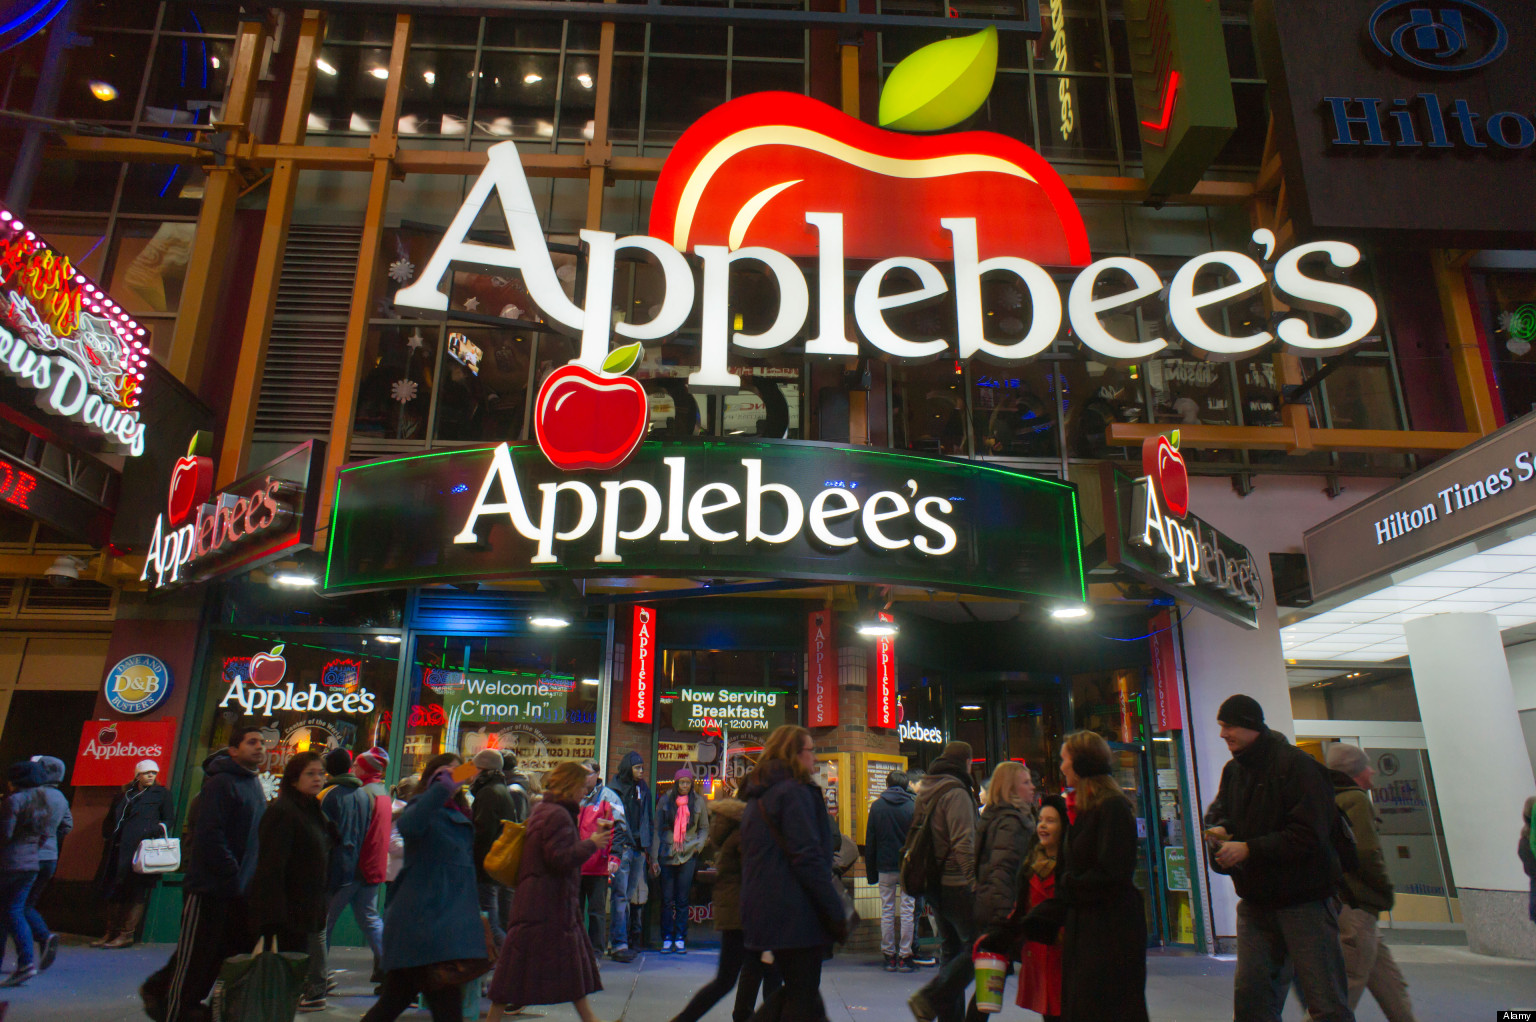 woman at applebees gets cracked across the face with glass mug for